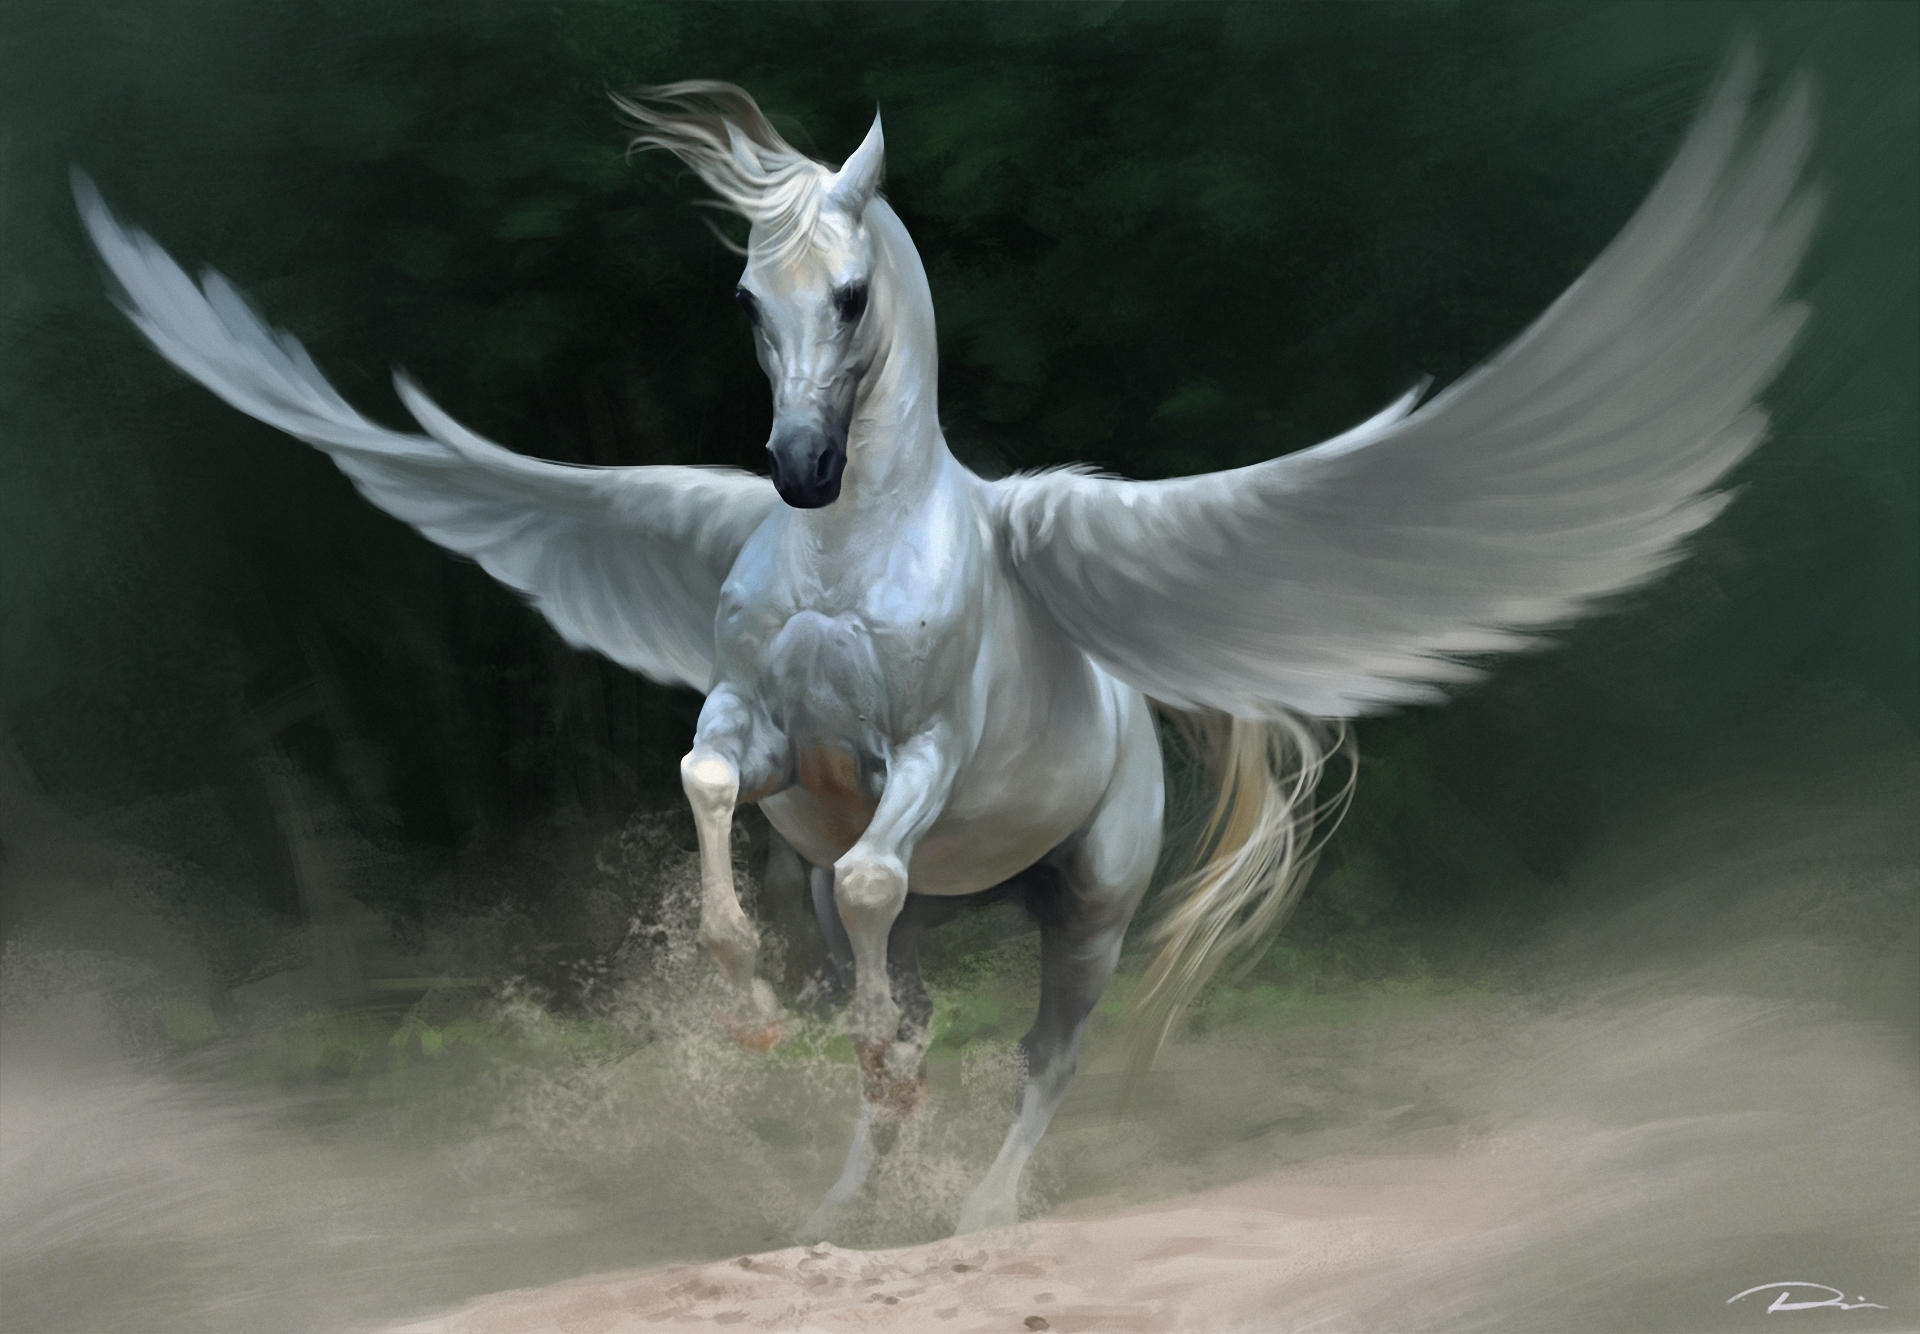 Flying Horse Computer Wallpapers, Desktop Backgrounds ...